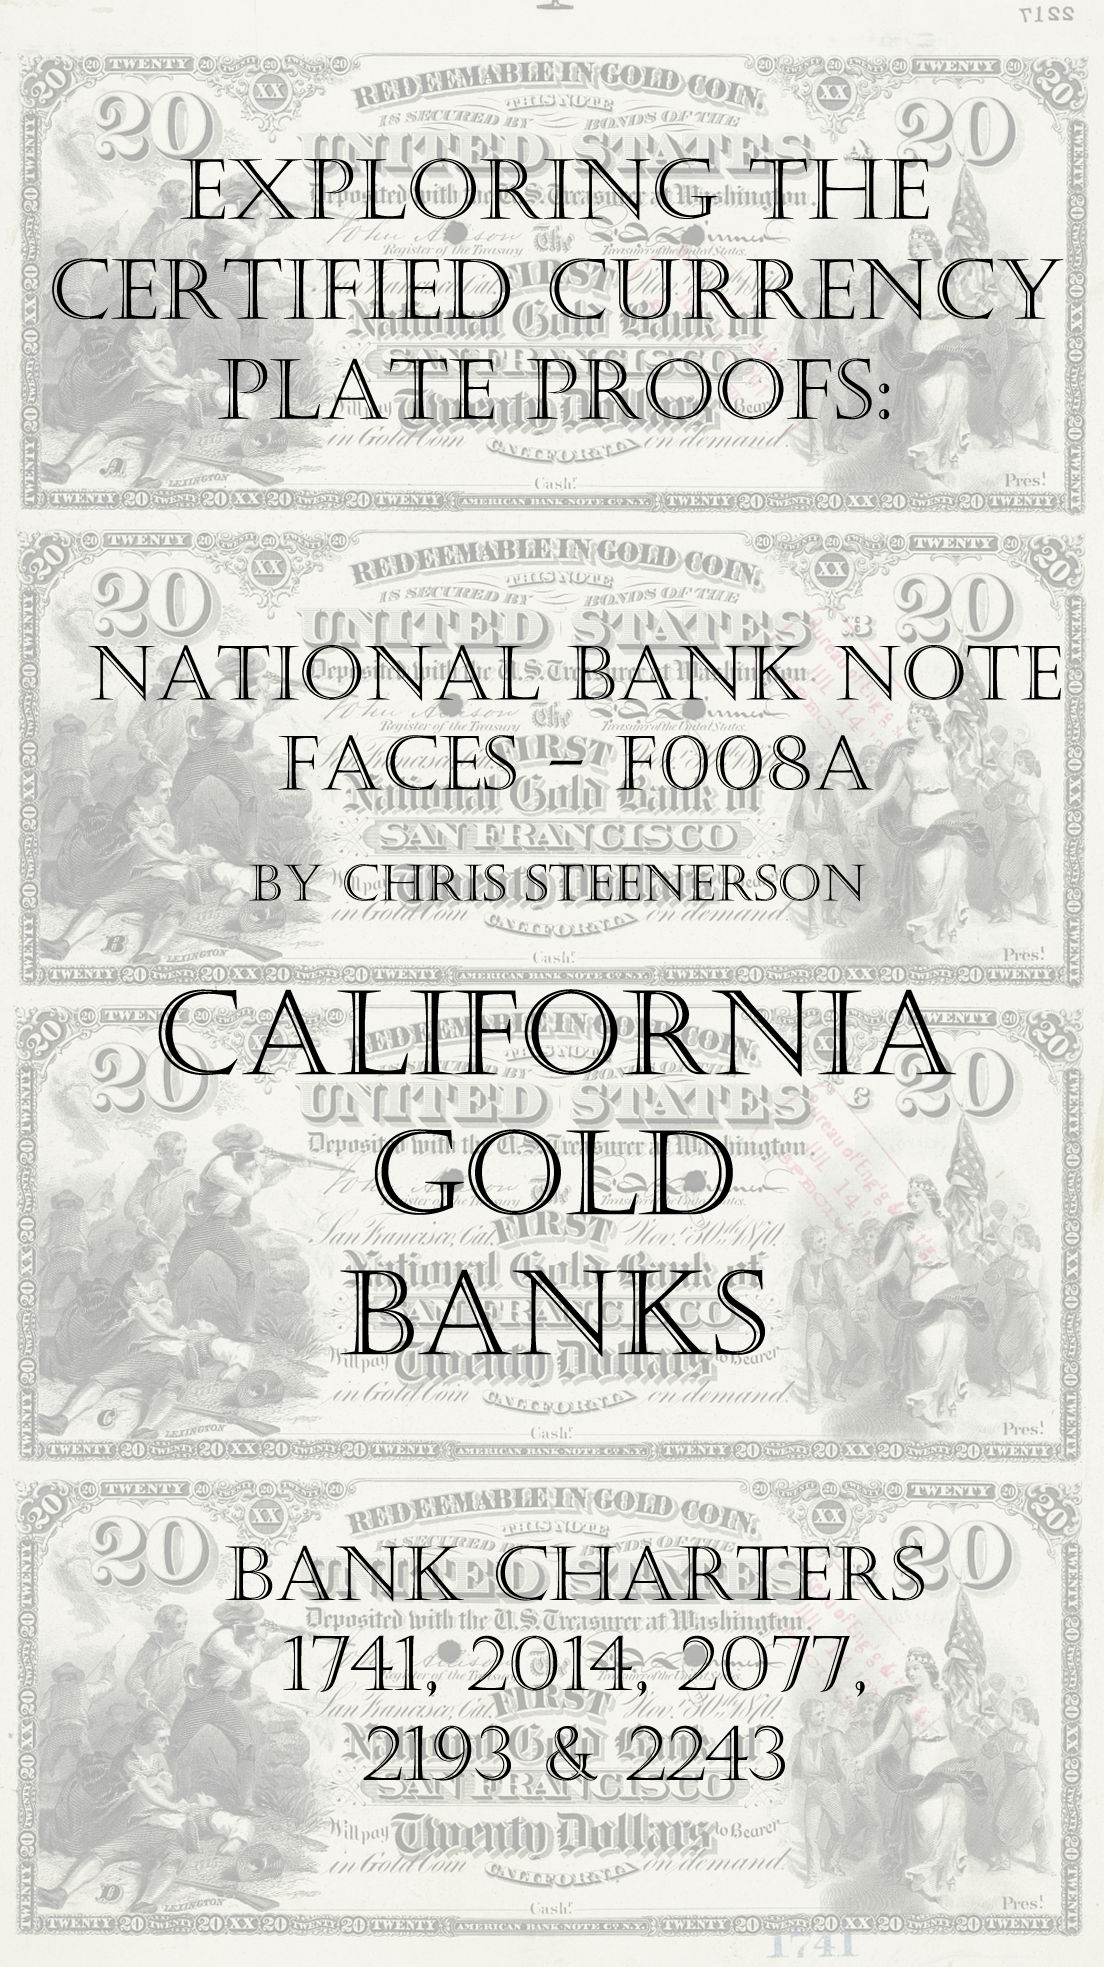 California Gold Banks - National Bank Note Currency Proofs